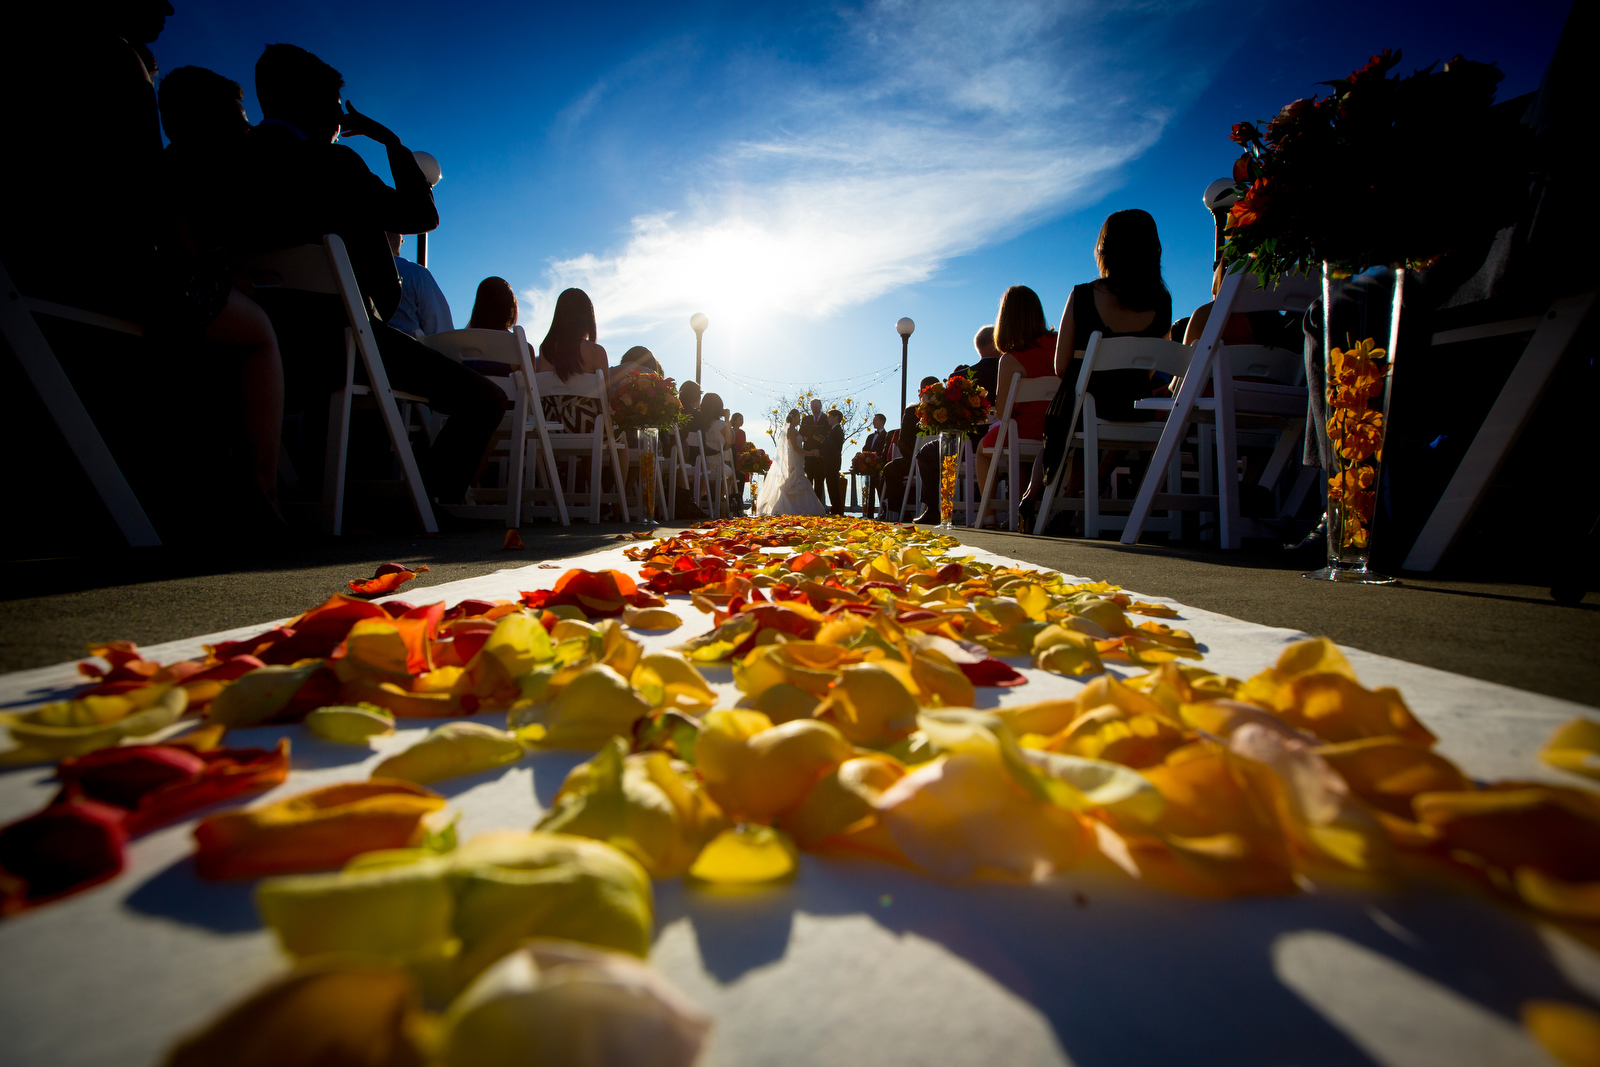 The aisle is decorated with flowers as the bride and groom exchange vows during their wedding ceremony at the Seattle Aquarium. (Wedding Photography by Scott Eklund - Red Box Pictures)